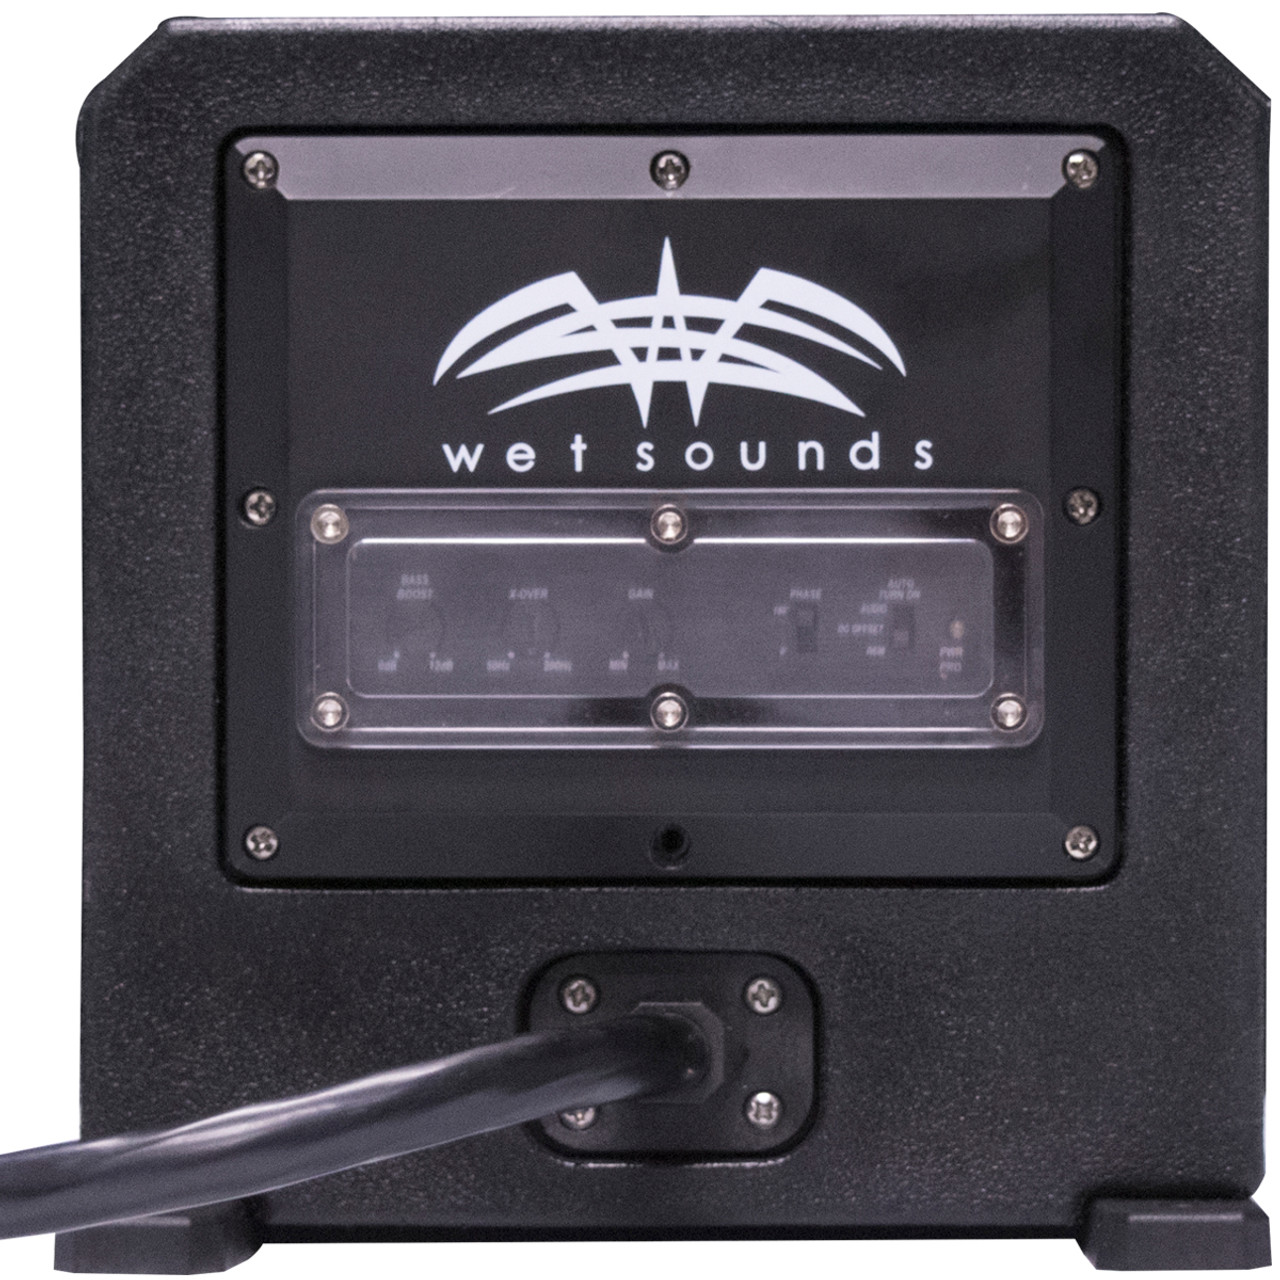 Wet Sounds Stealth Package - White Stealth 6 Ultra 200 Watt Sound ...